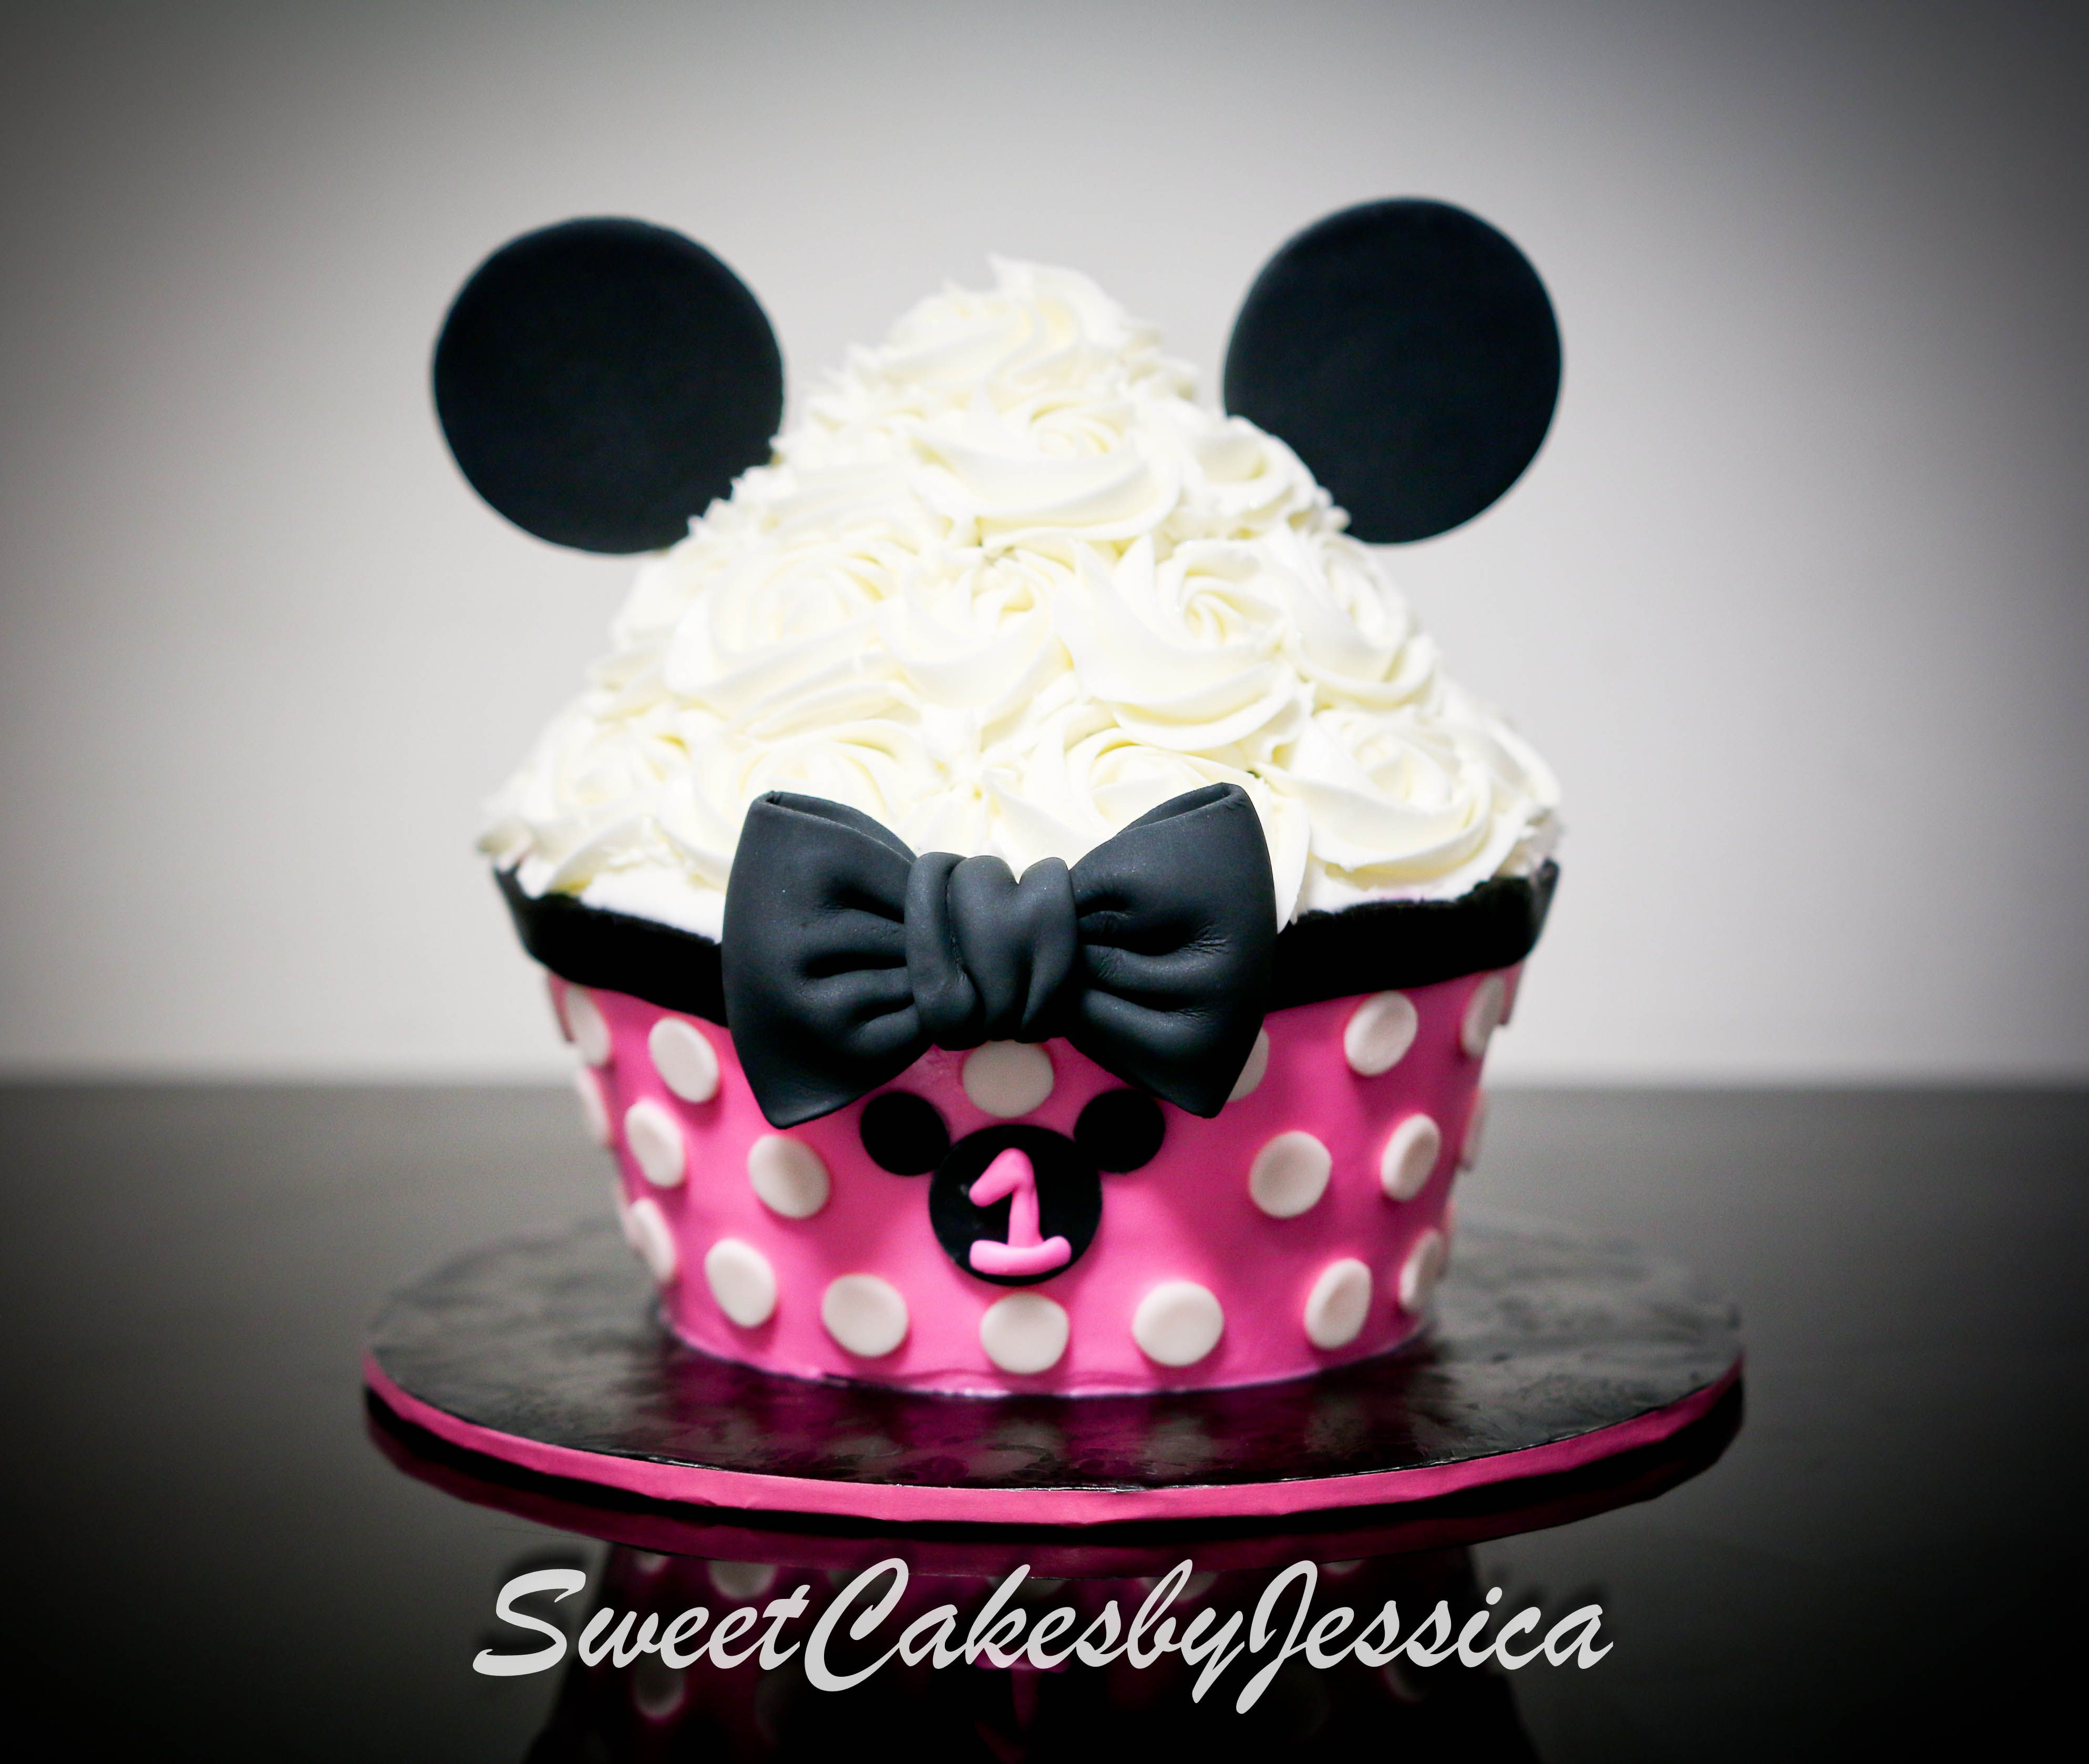 Minnie Mouse Minnie Mouse Cake Smash Cake Ideas Pink And Black 1st Birthday Par Minnie Mouse Birthday Cakes Minnie Mouse Cake Decorations Minnie Mouse Cake